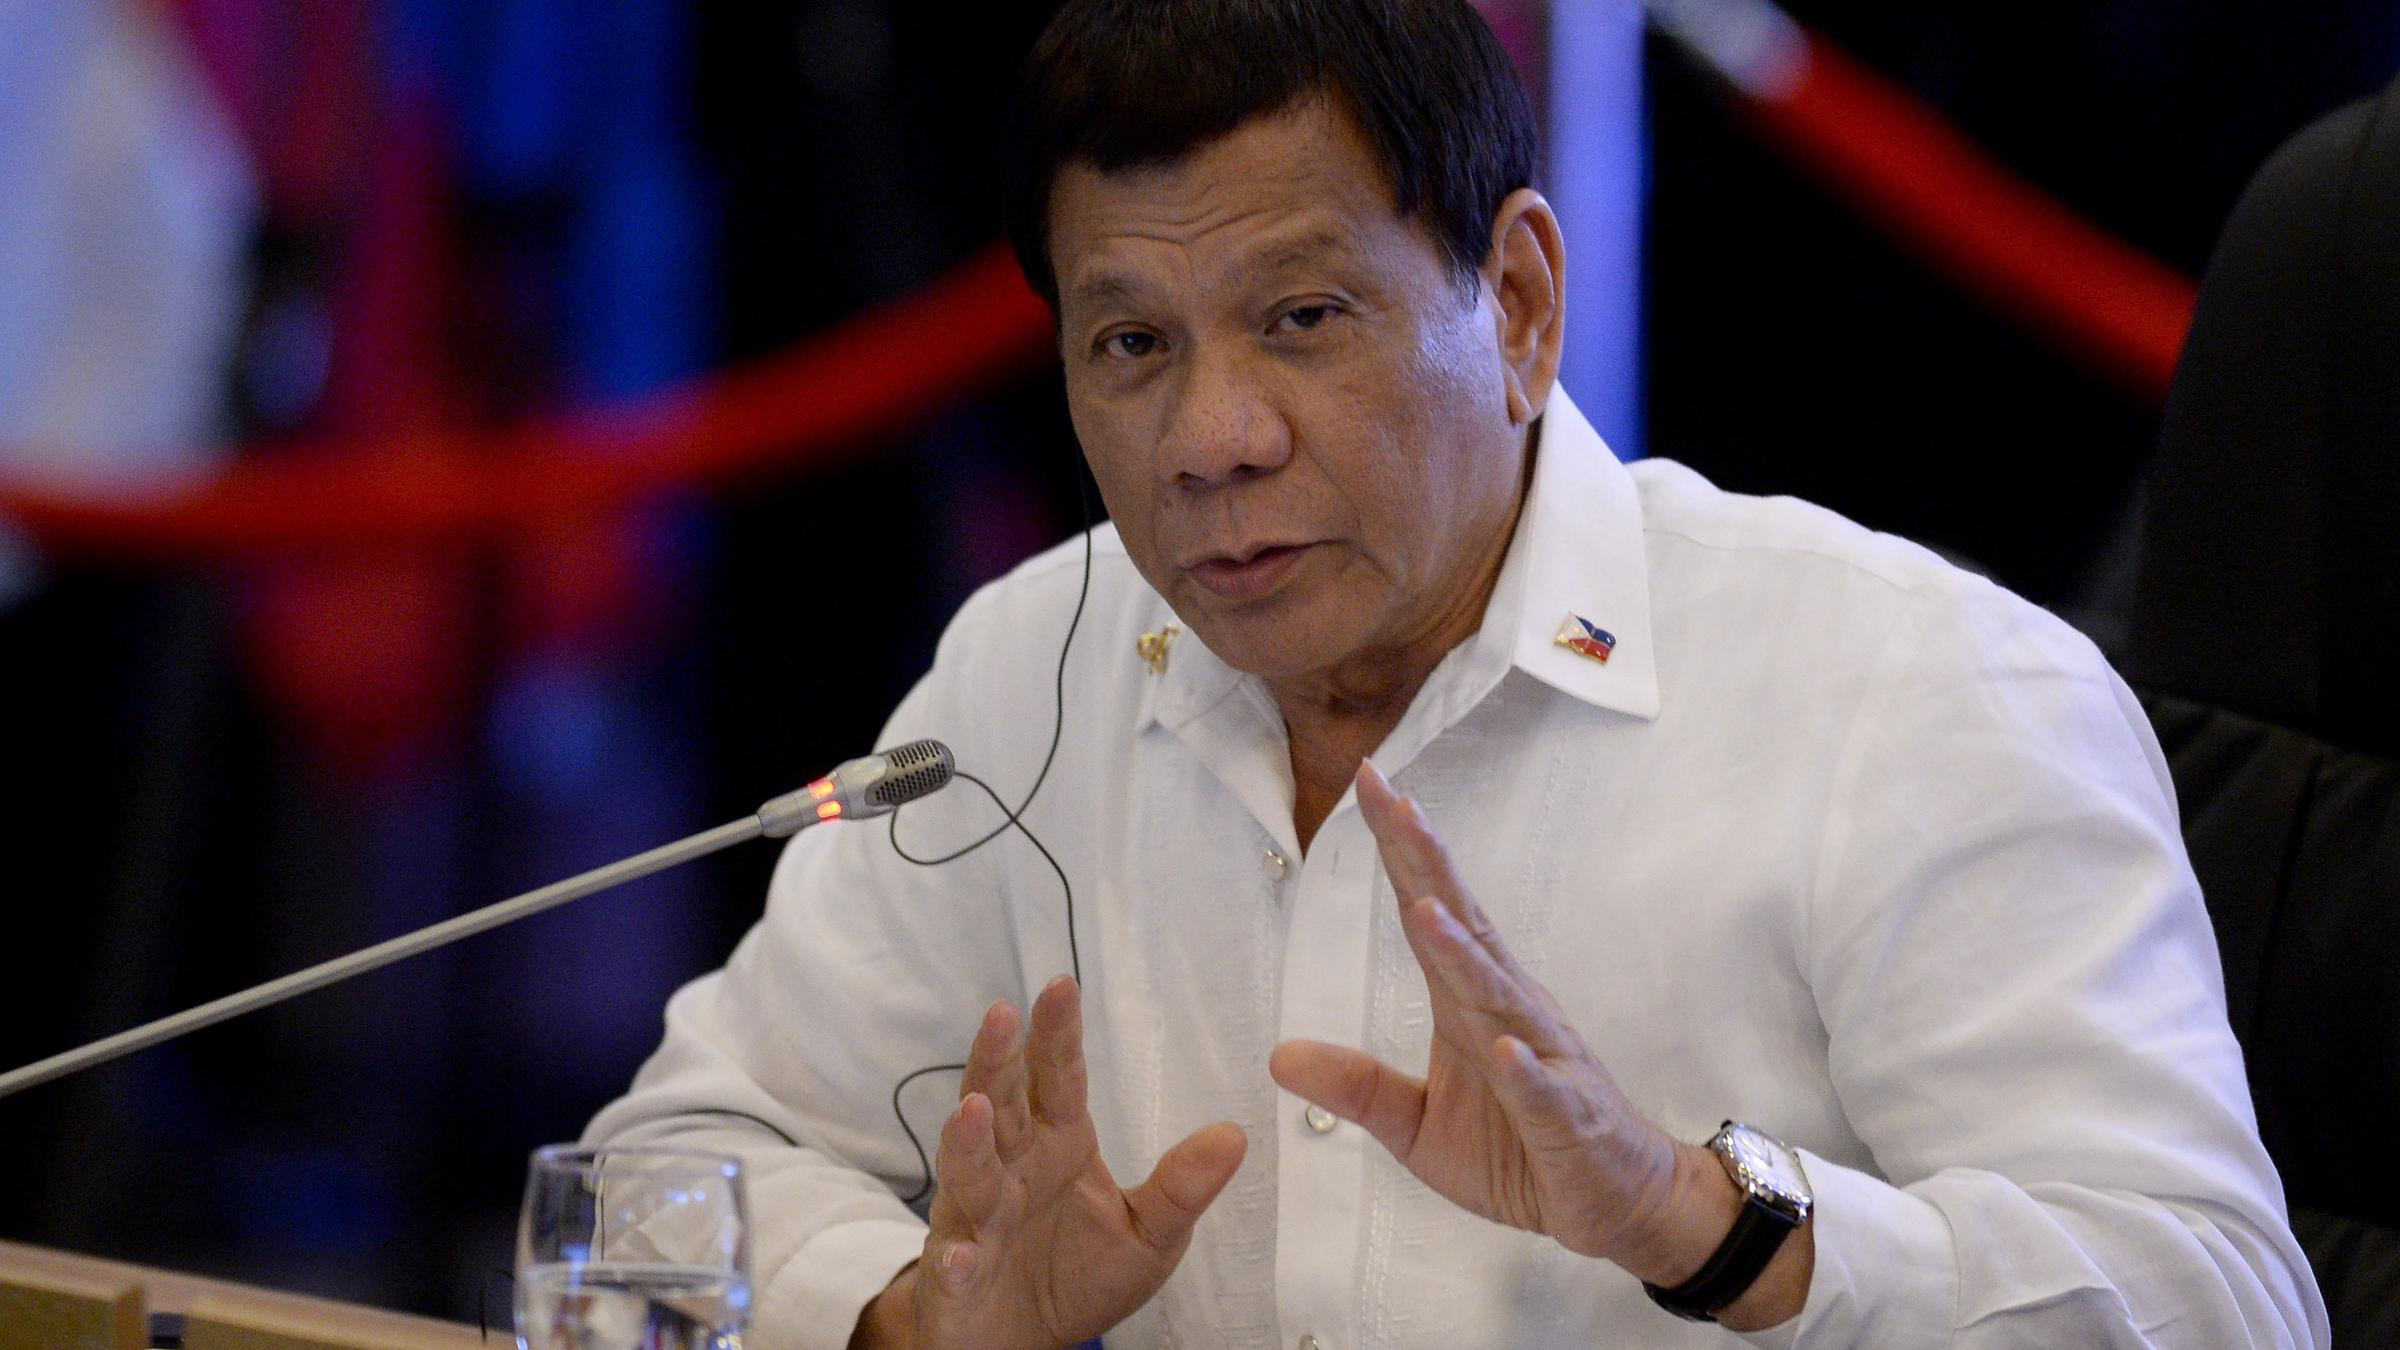 Philippine President Duterte: Human Rights Investigators Should Be Fed to Crocodiles